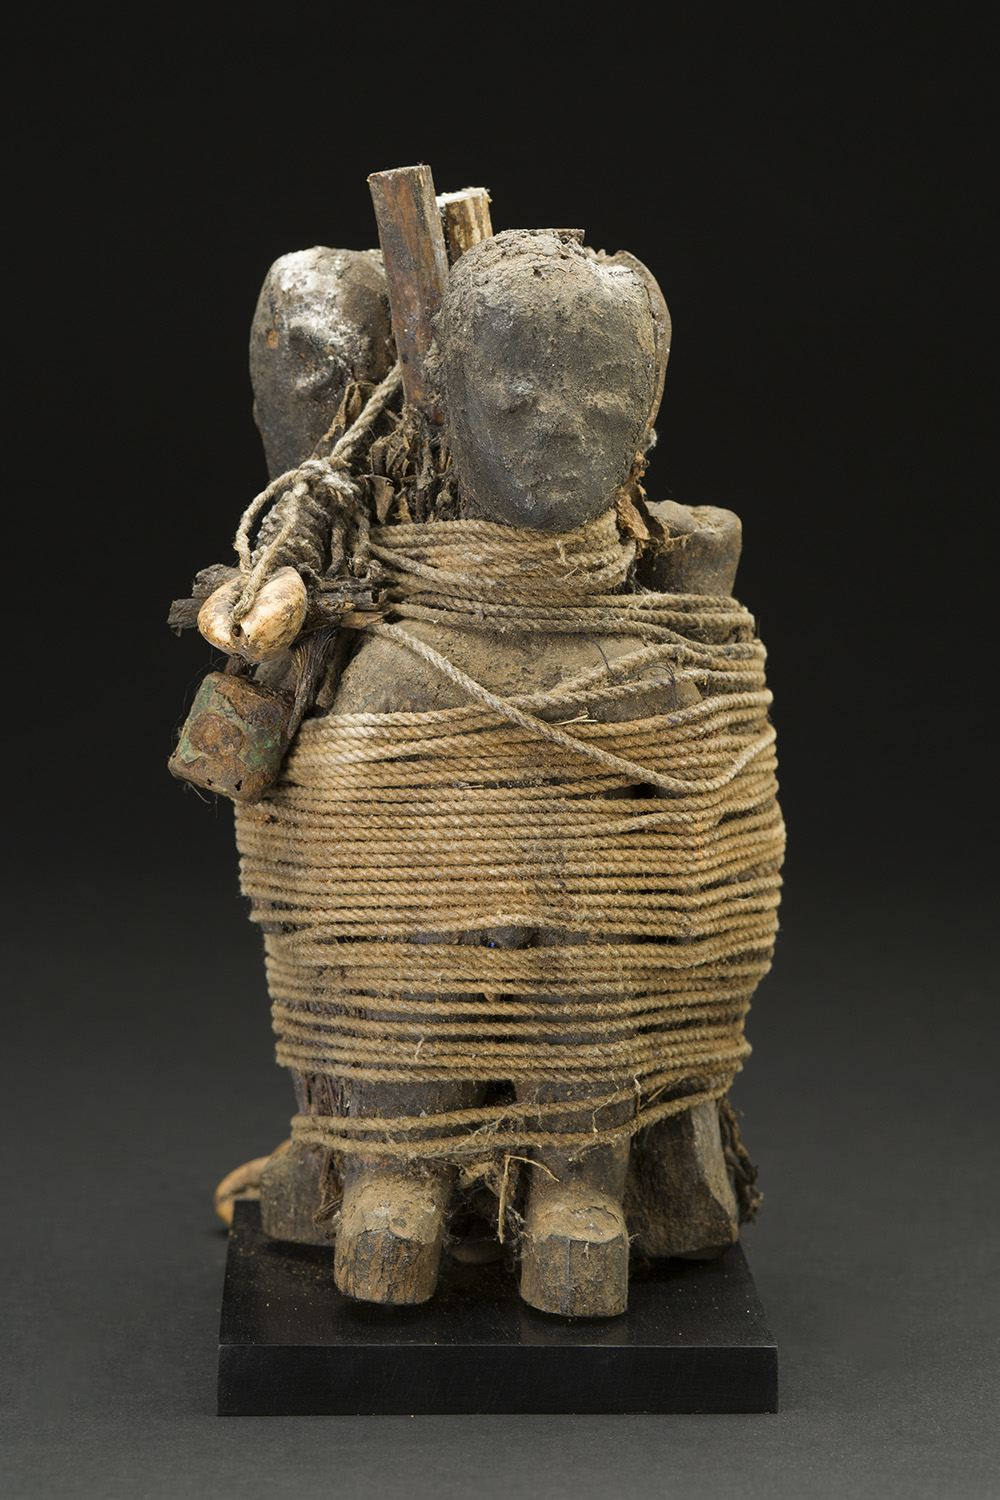 Africa    Vodun Sculpture - Ewe People - Togo  , Mid. 20th C. Wood, string, bone, shells, nails, padlocks, pigment, iron, feathers, patina, and sacrificial materials 8 x 5.25 x 4 inches 20.3 x 13.3 x 10.2 cm Af 317